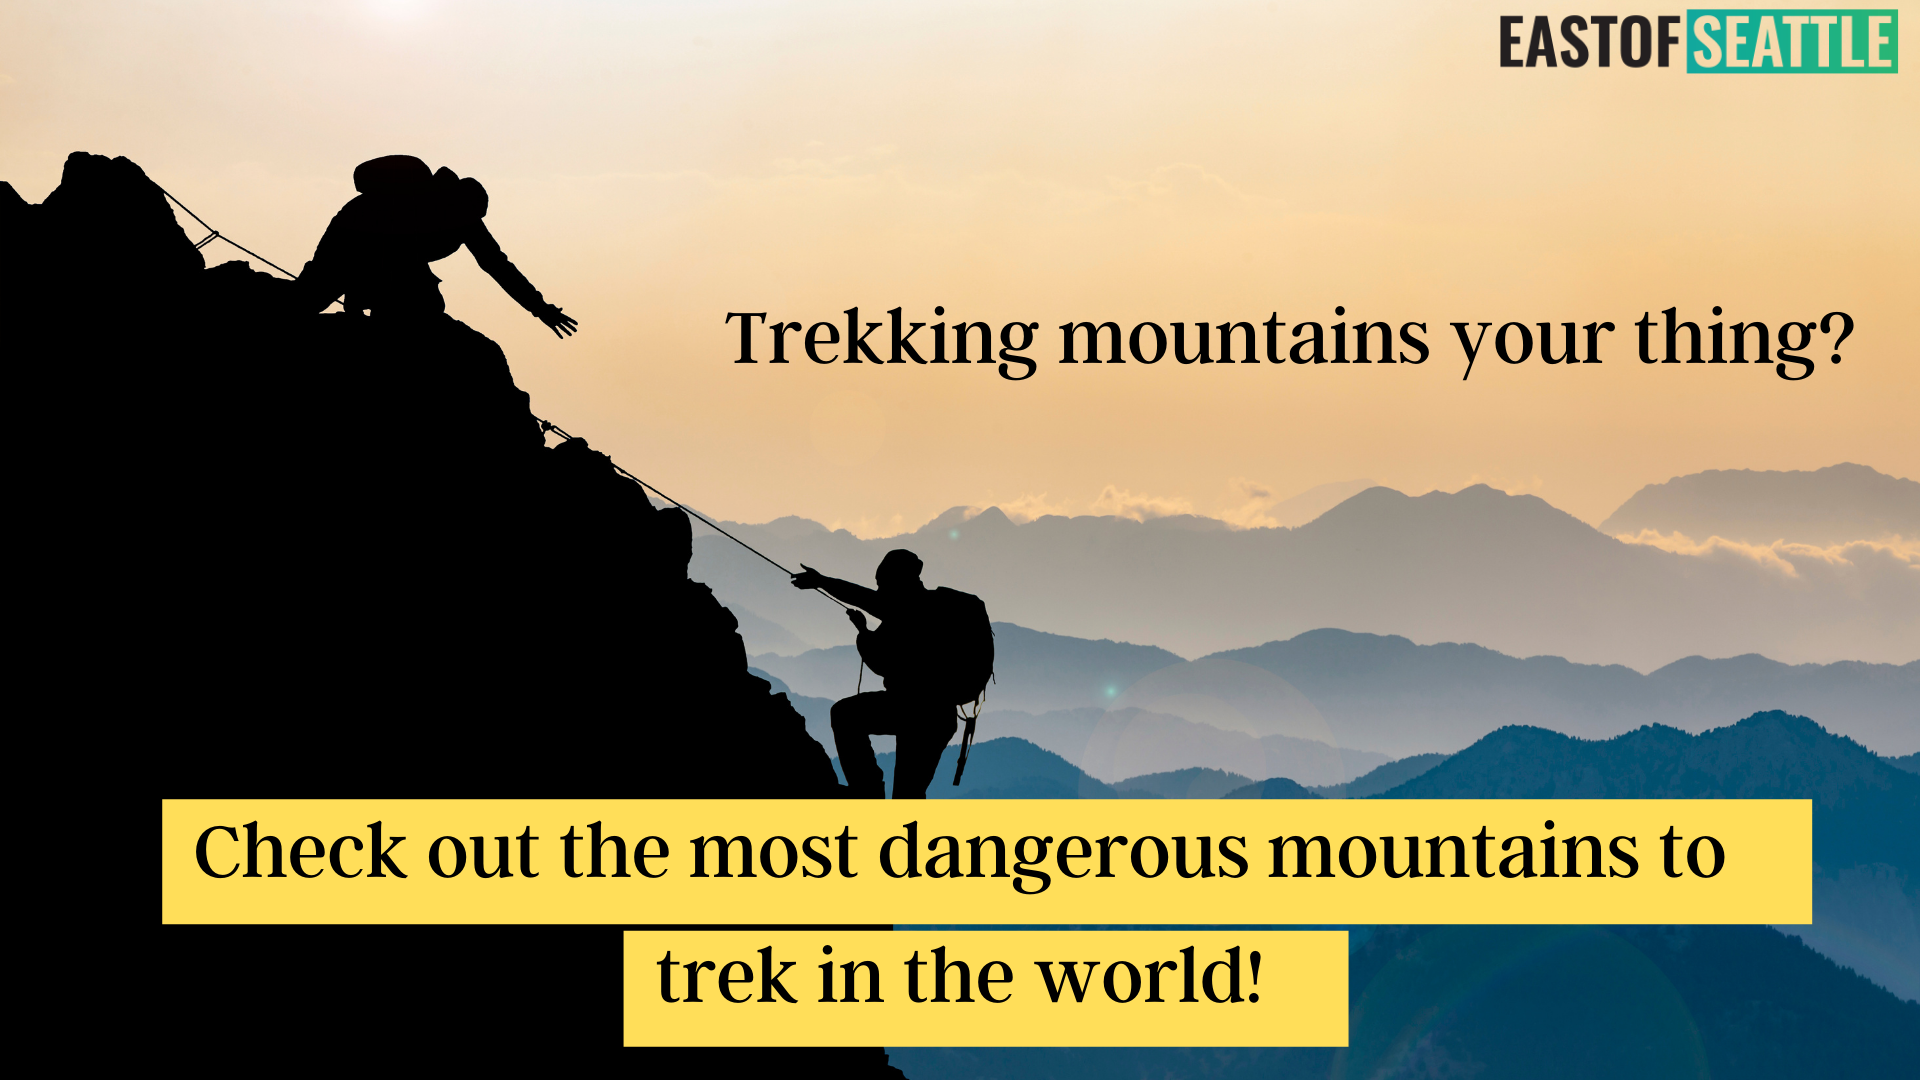 Trekking mountains your thing? Check out the most dangerous mountains to trek in the world!